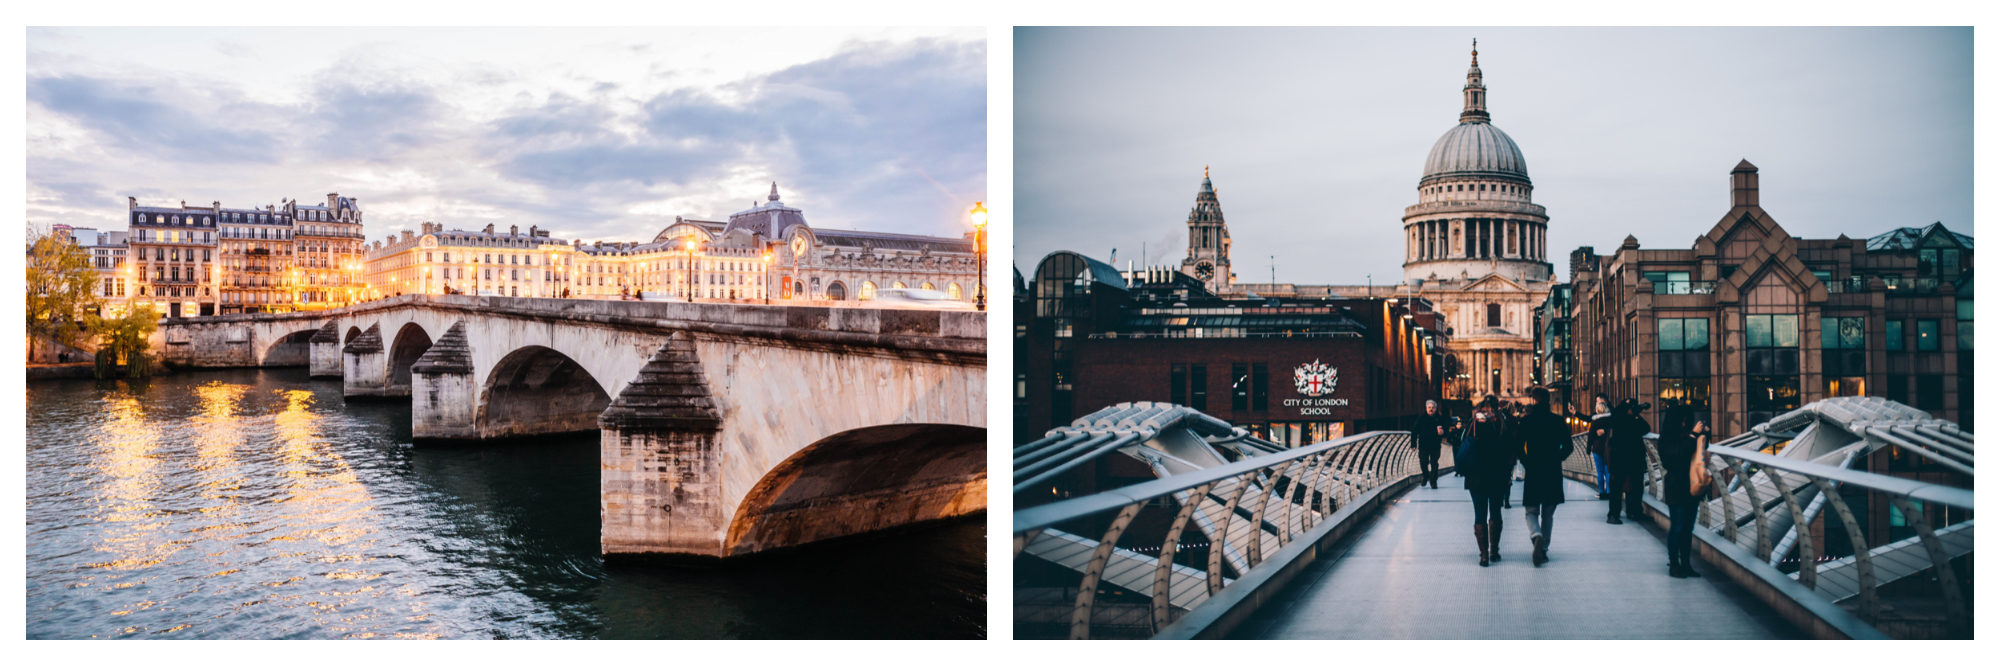 Paris at sunset, a stone bridge straddling the River Seine (left). London's Millenium Bridge with Saint Paul's Cathedral in the background (right).